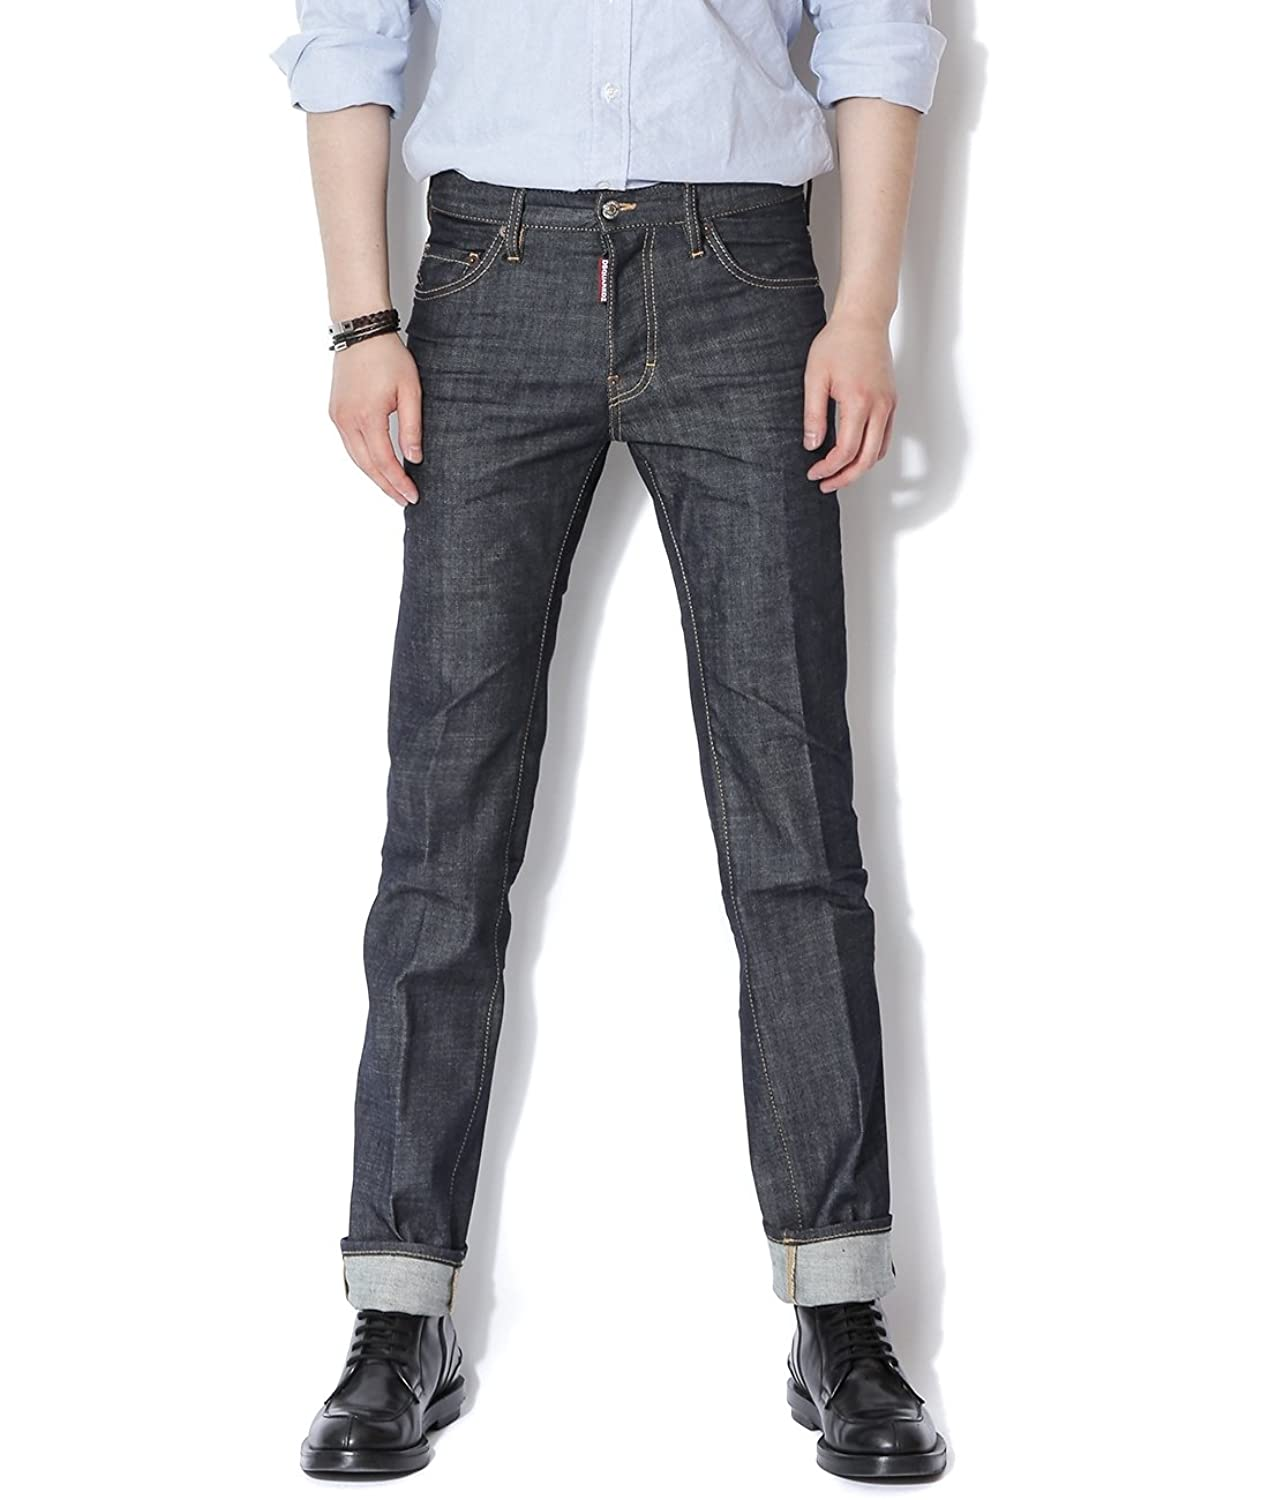 DSquared2 Men's Regular Fit Jeans With Leather Patch